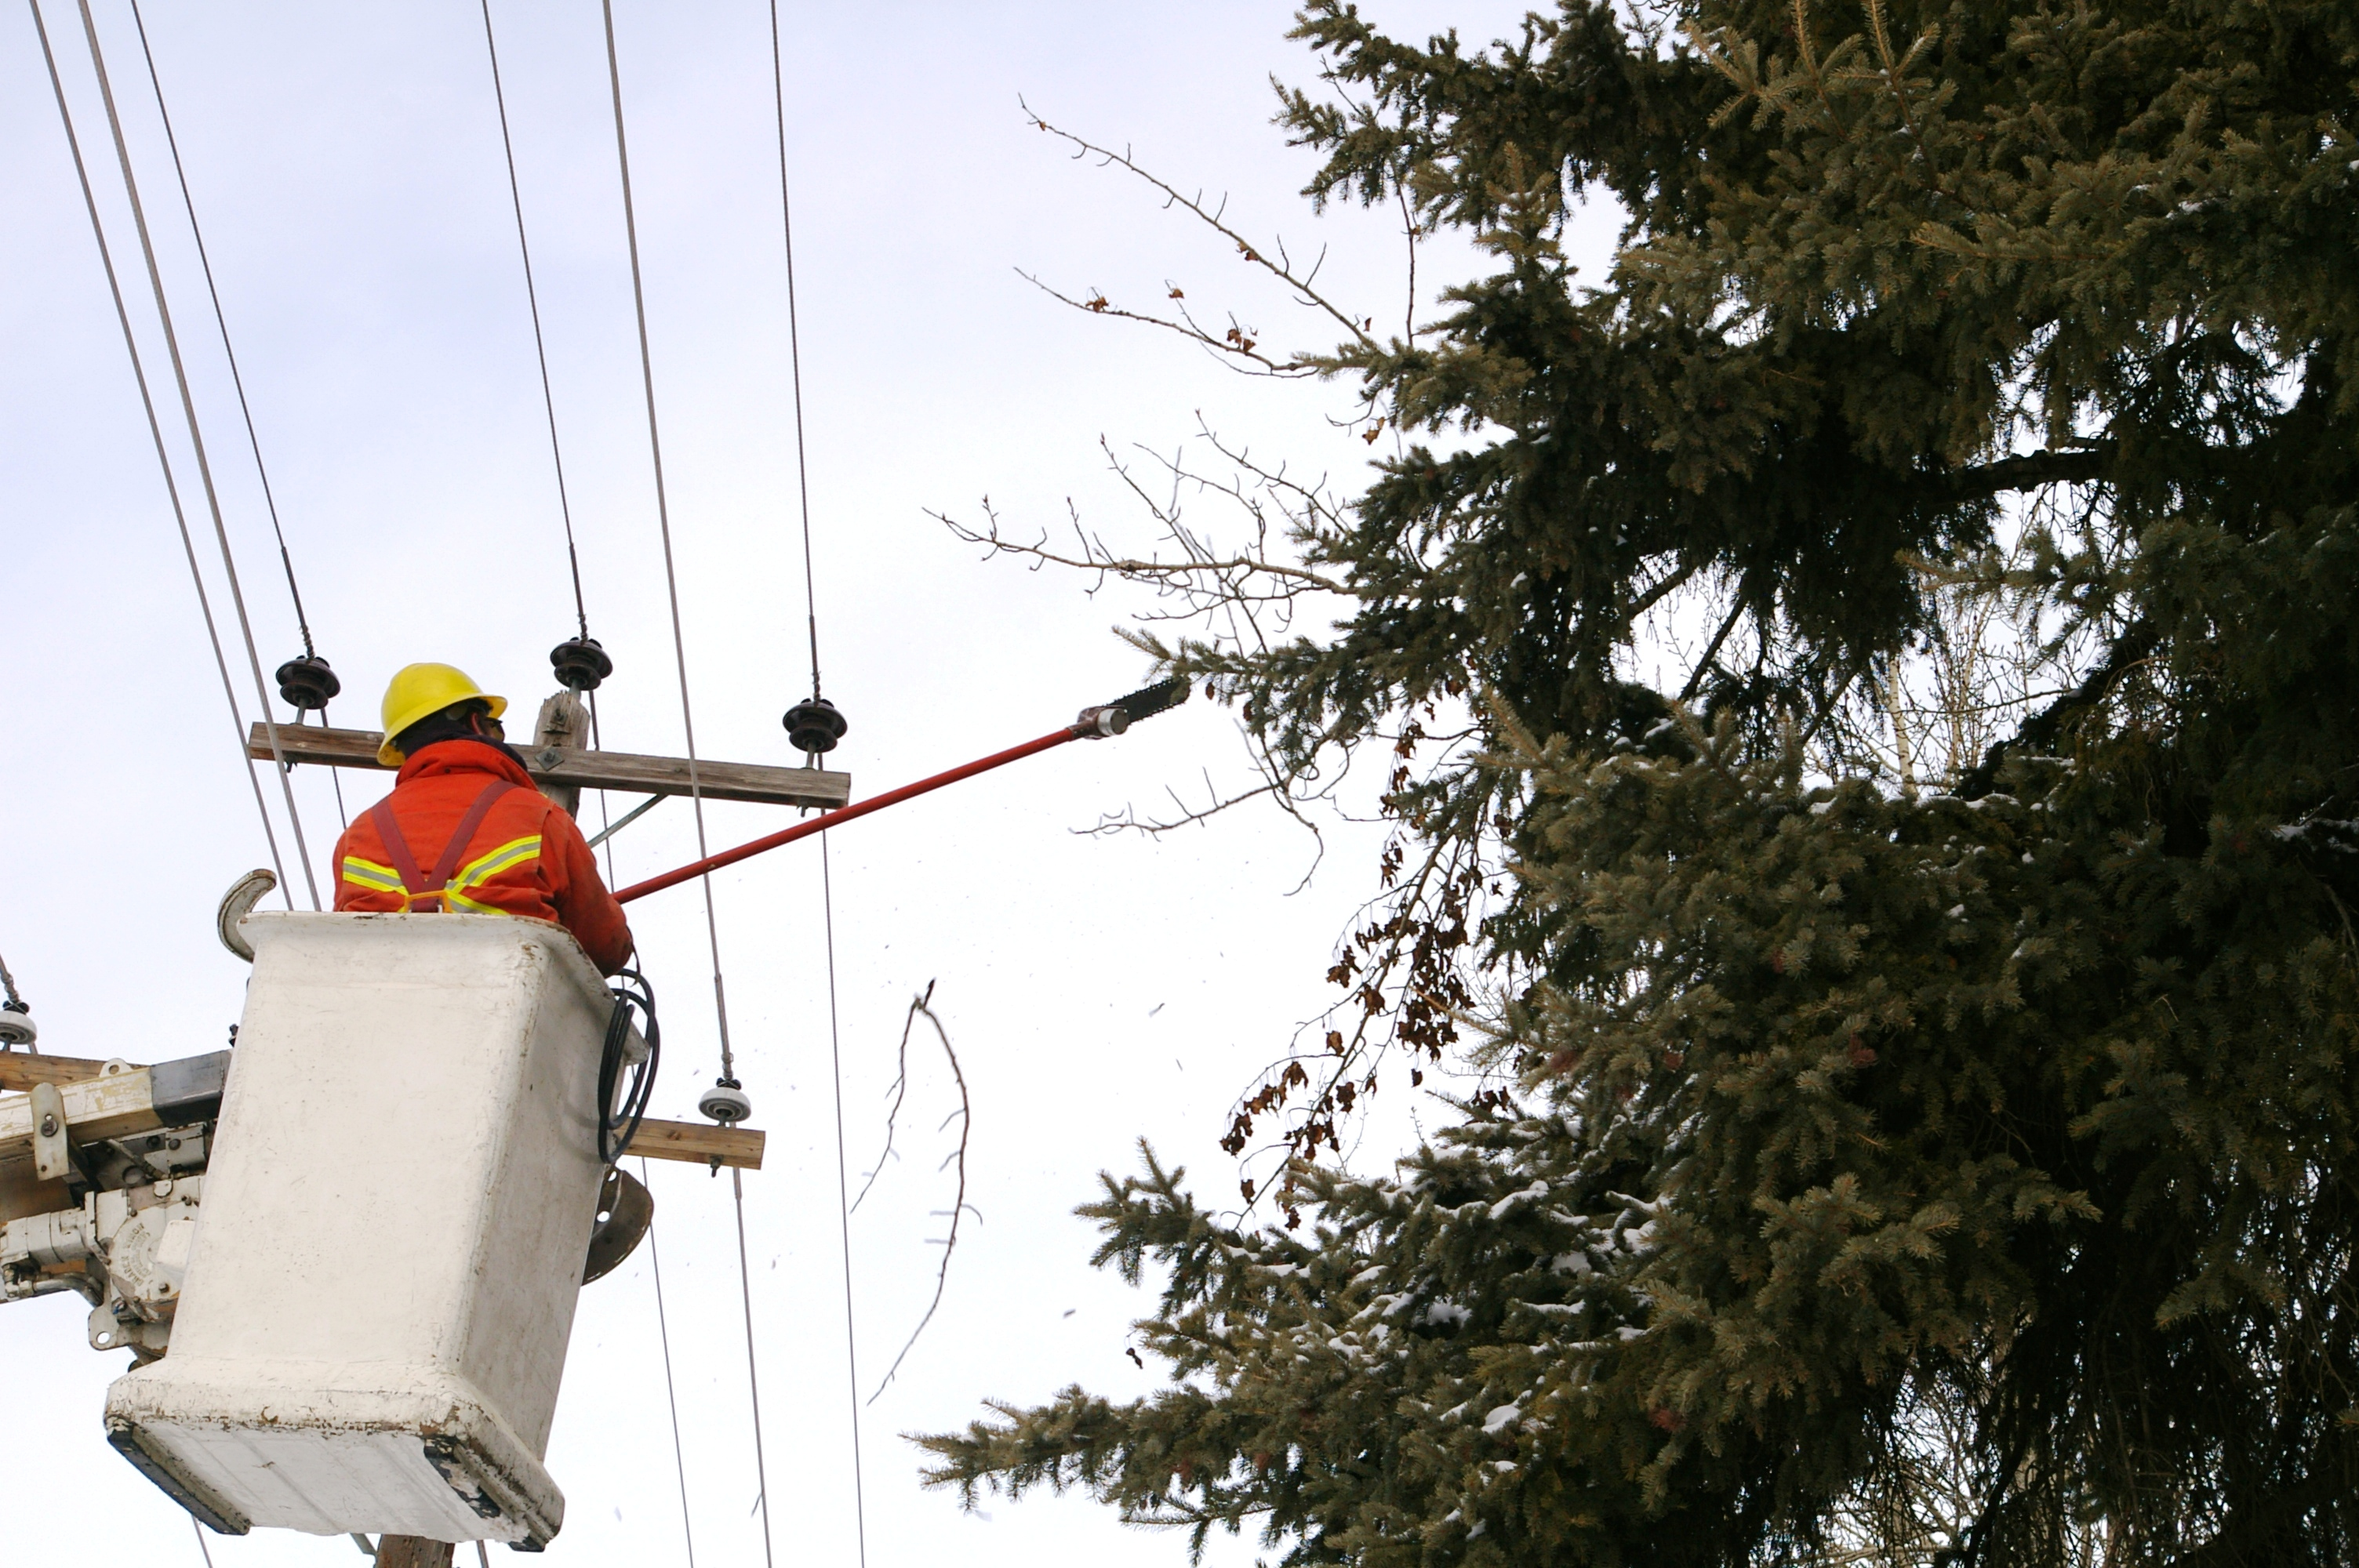 Trees and Power Lines - The City of Red Deer